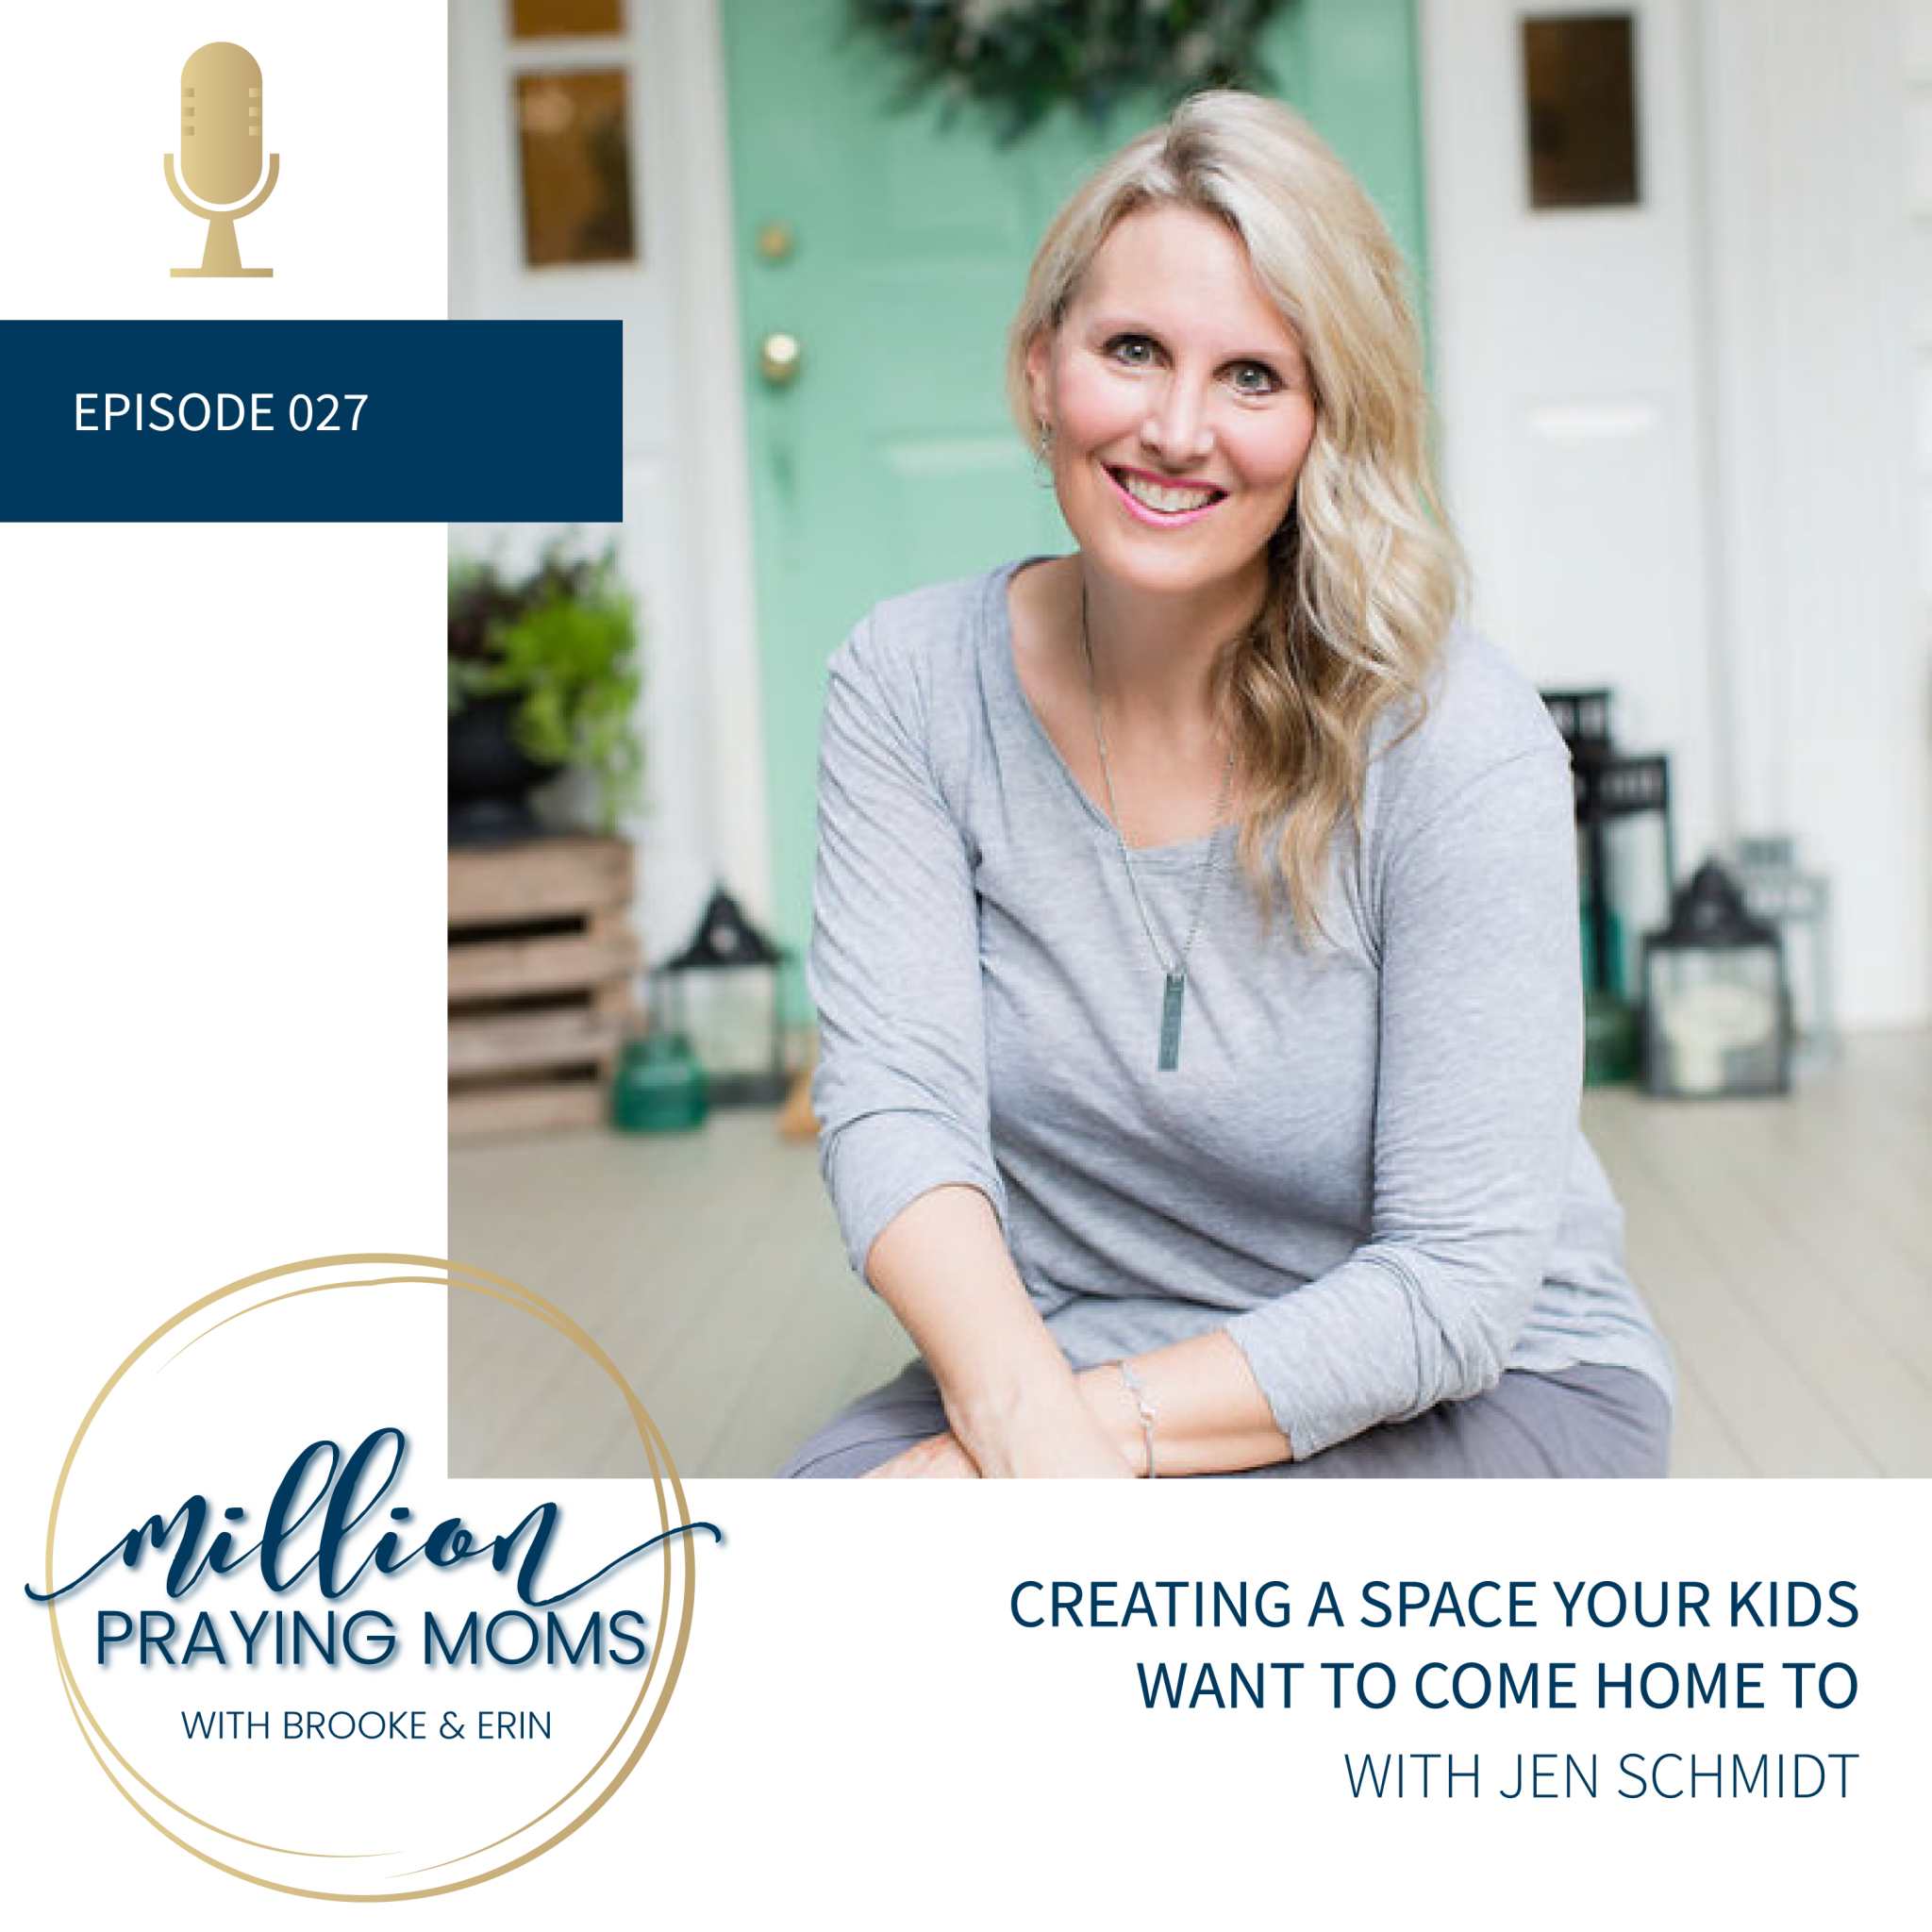 #27: Creating a Space Your Kids Want to Come Home To